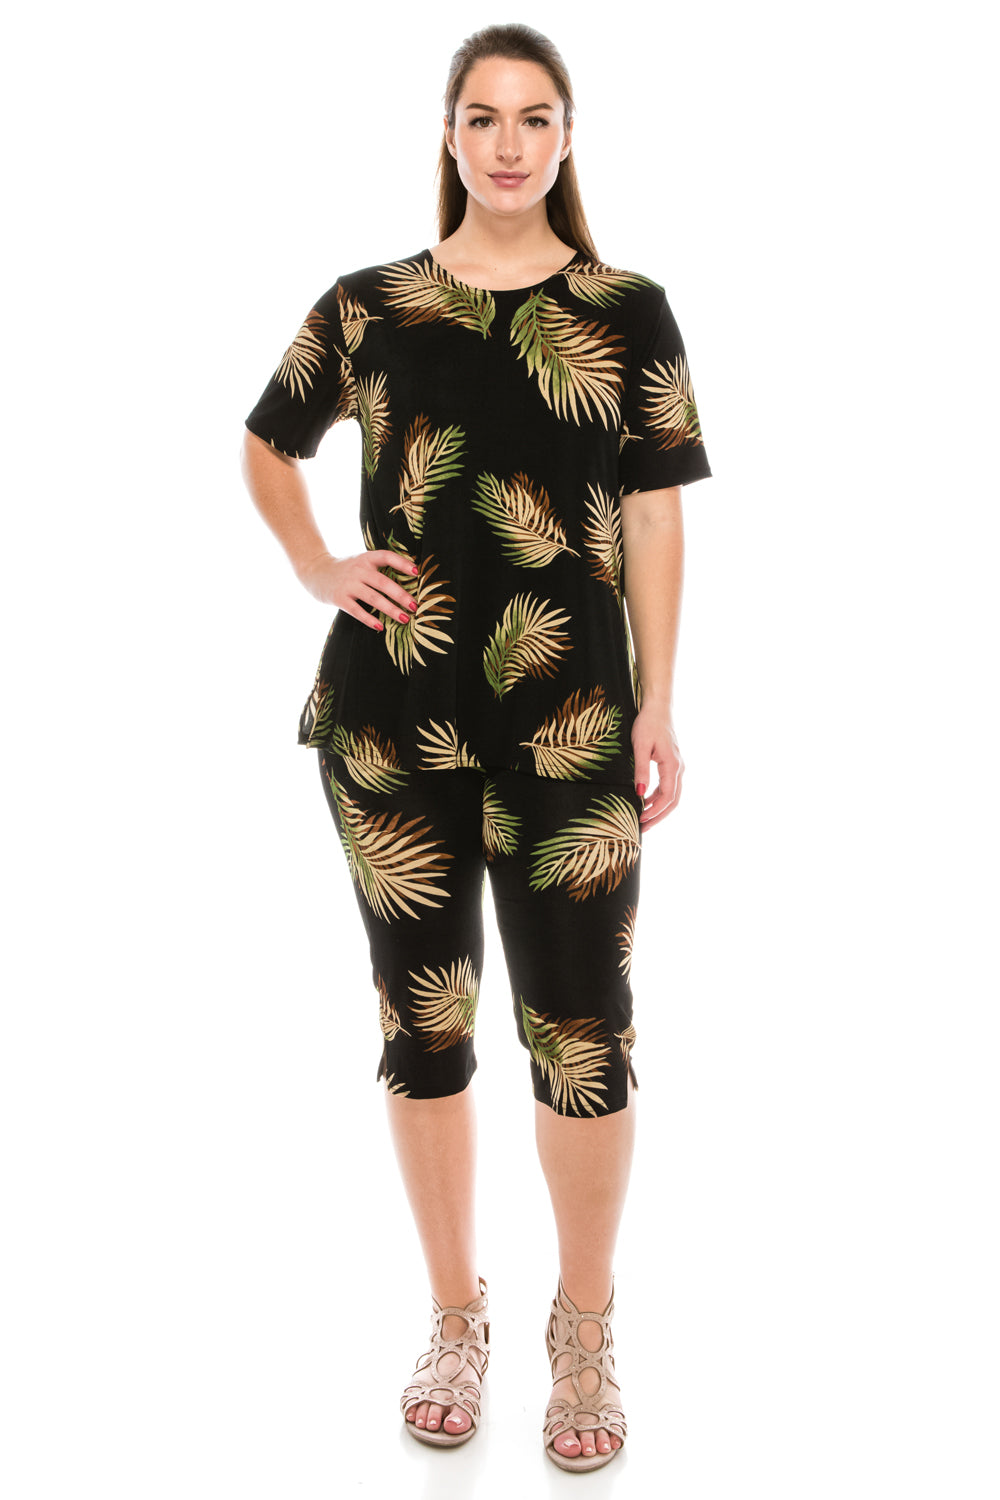 Jostar Women's Stretchy Capri Pant Set Short Sleeve Print, 903BN-SP-W002 - Jostar Online